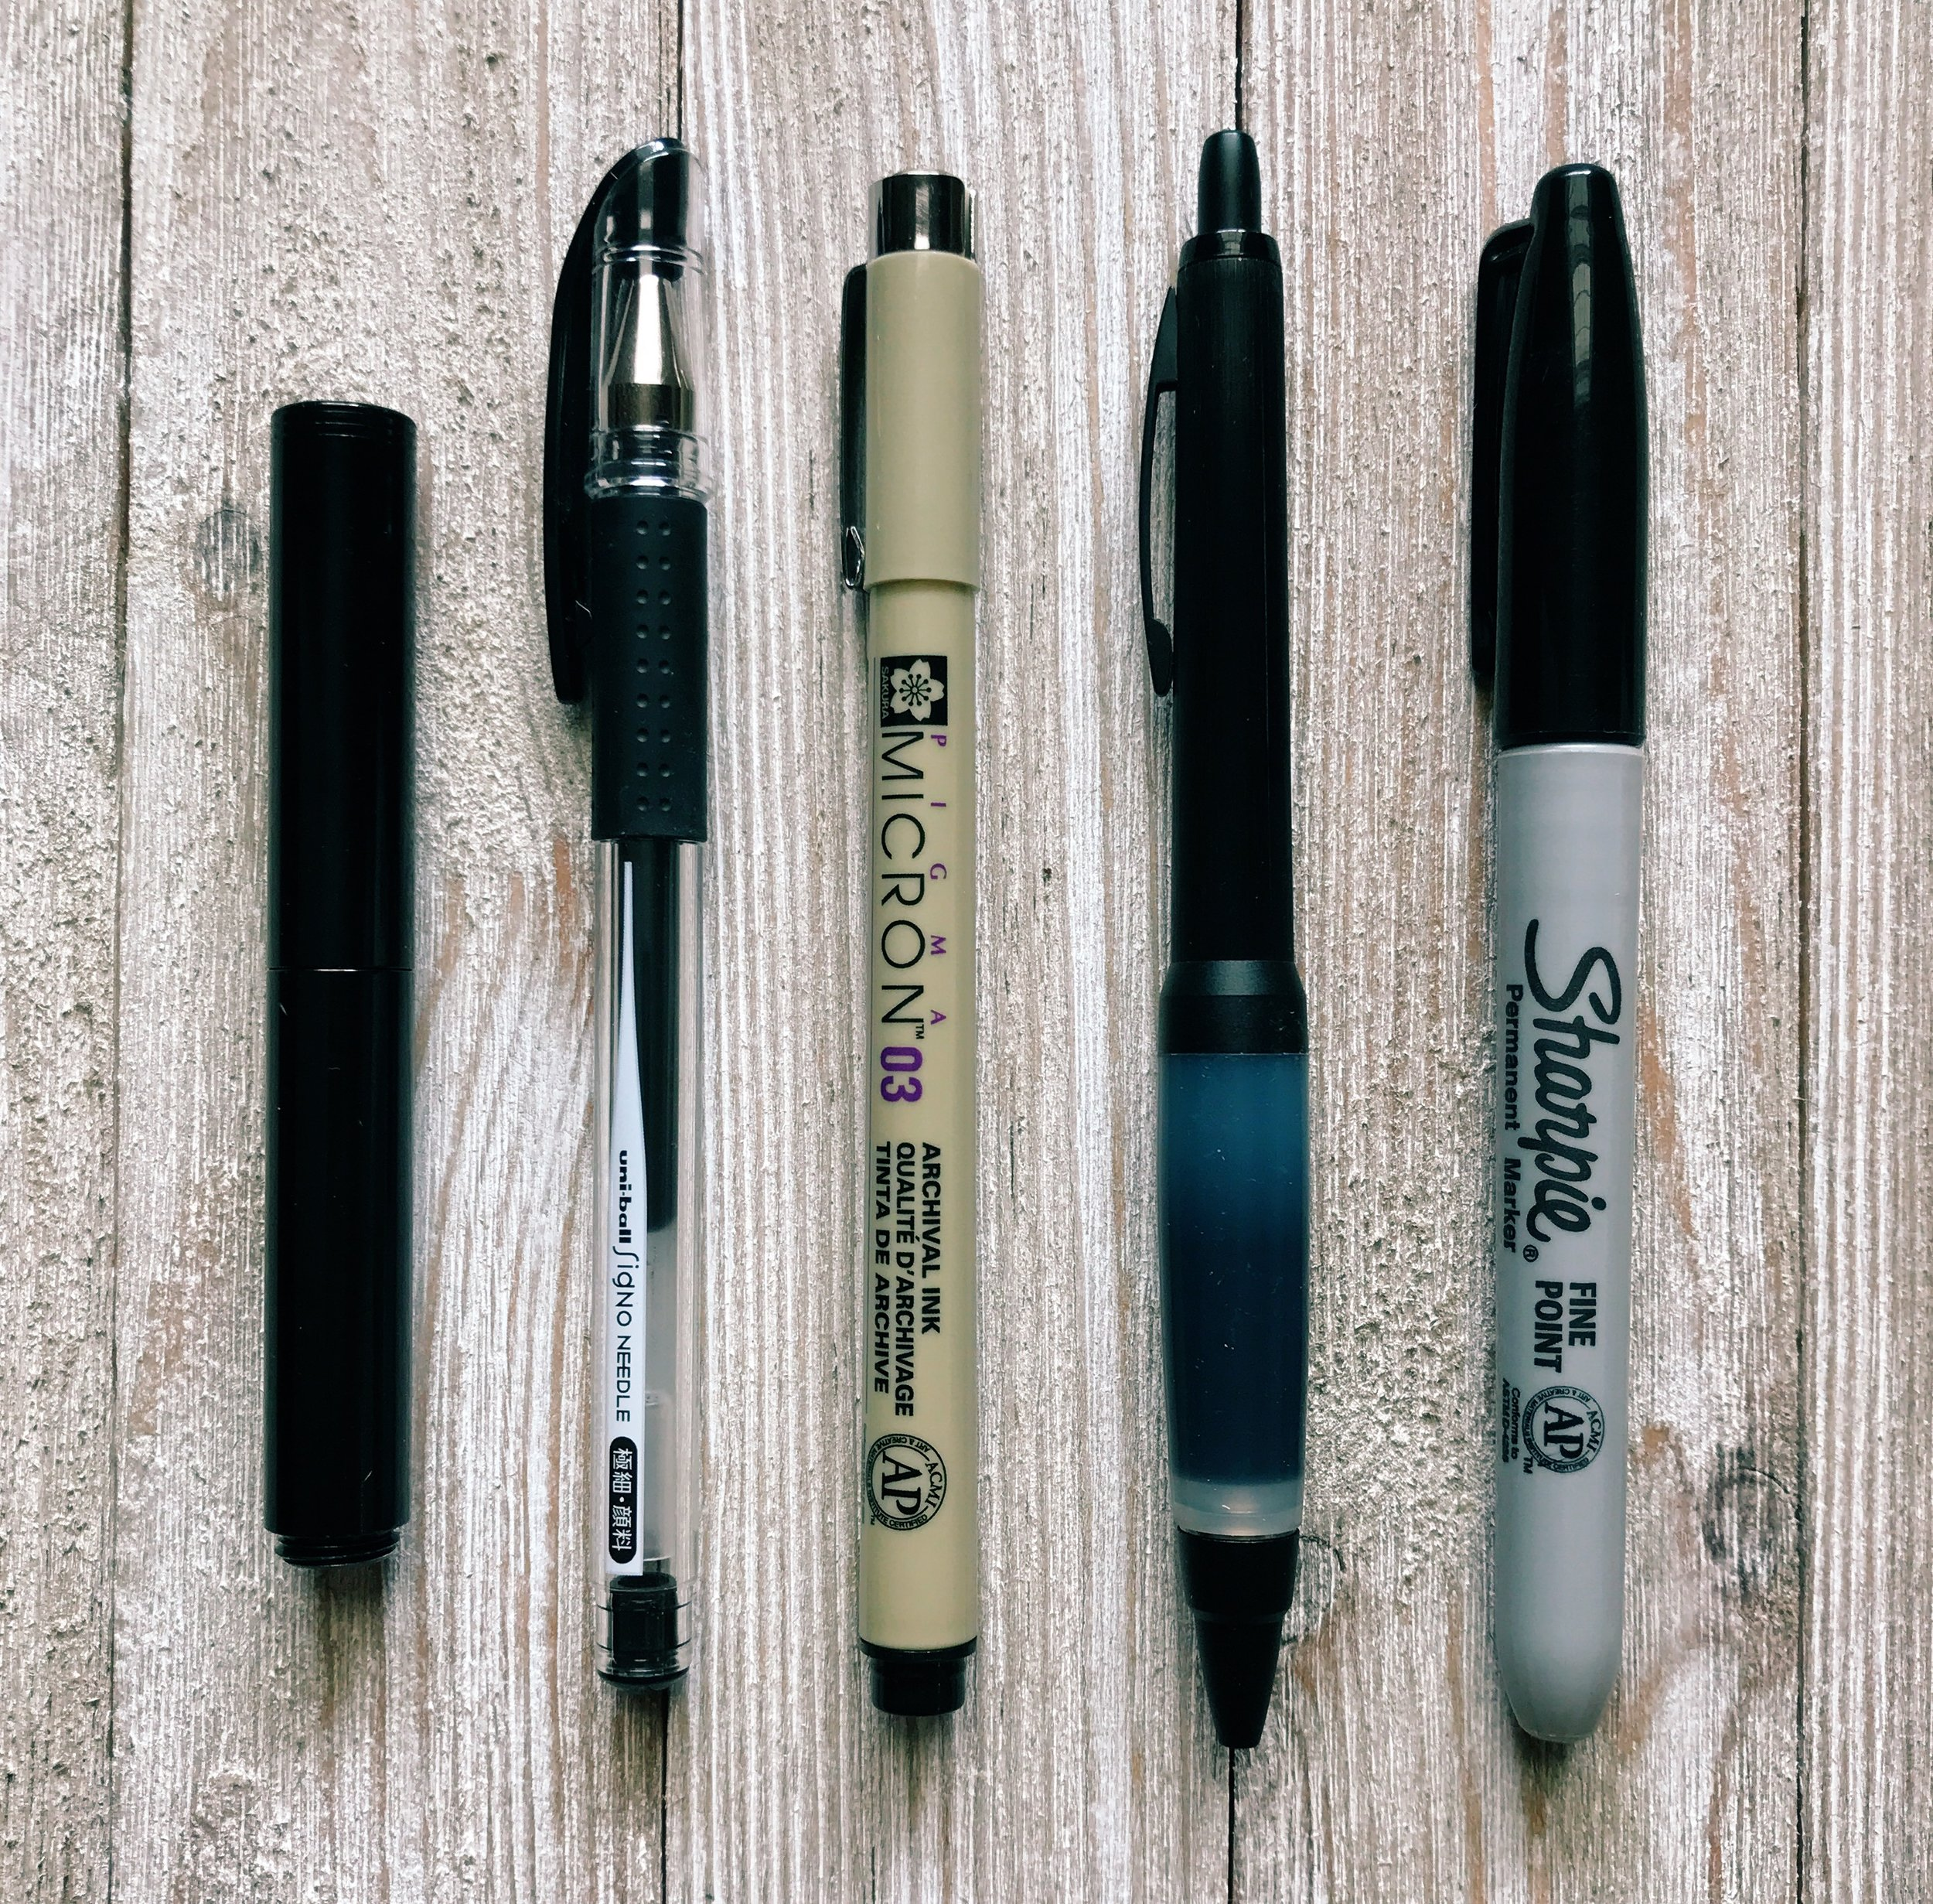 The newest list: Top 5 Most Useful Pens